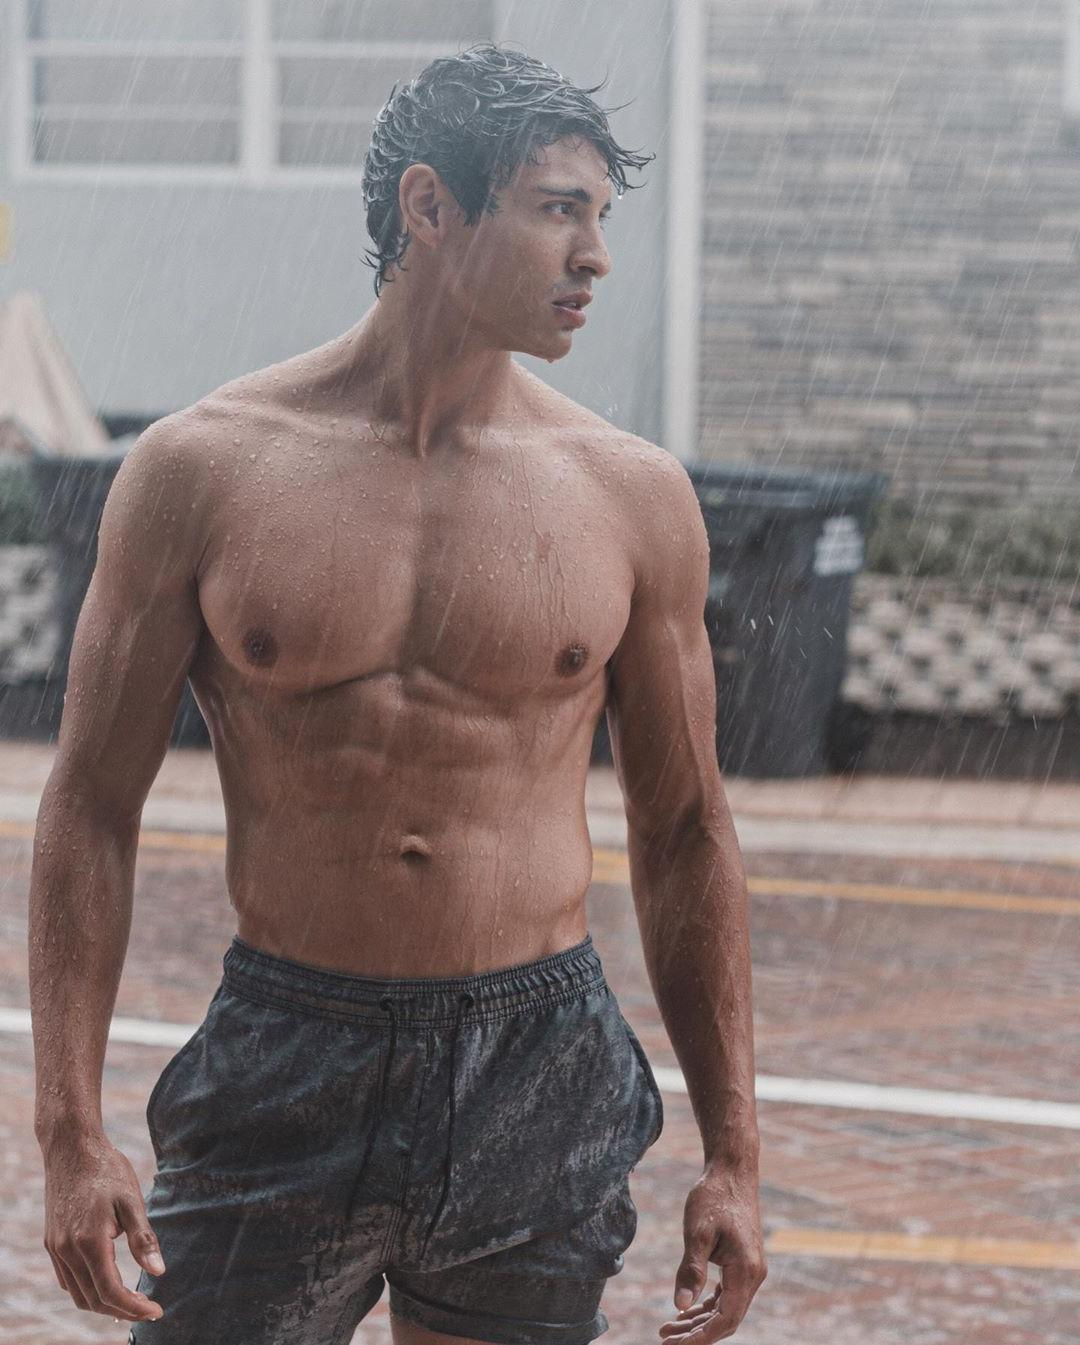 hot-guys-wet-fit-body-raining-young-muscle-hunk